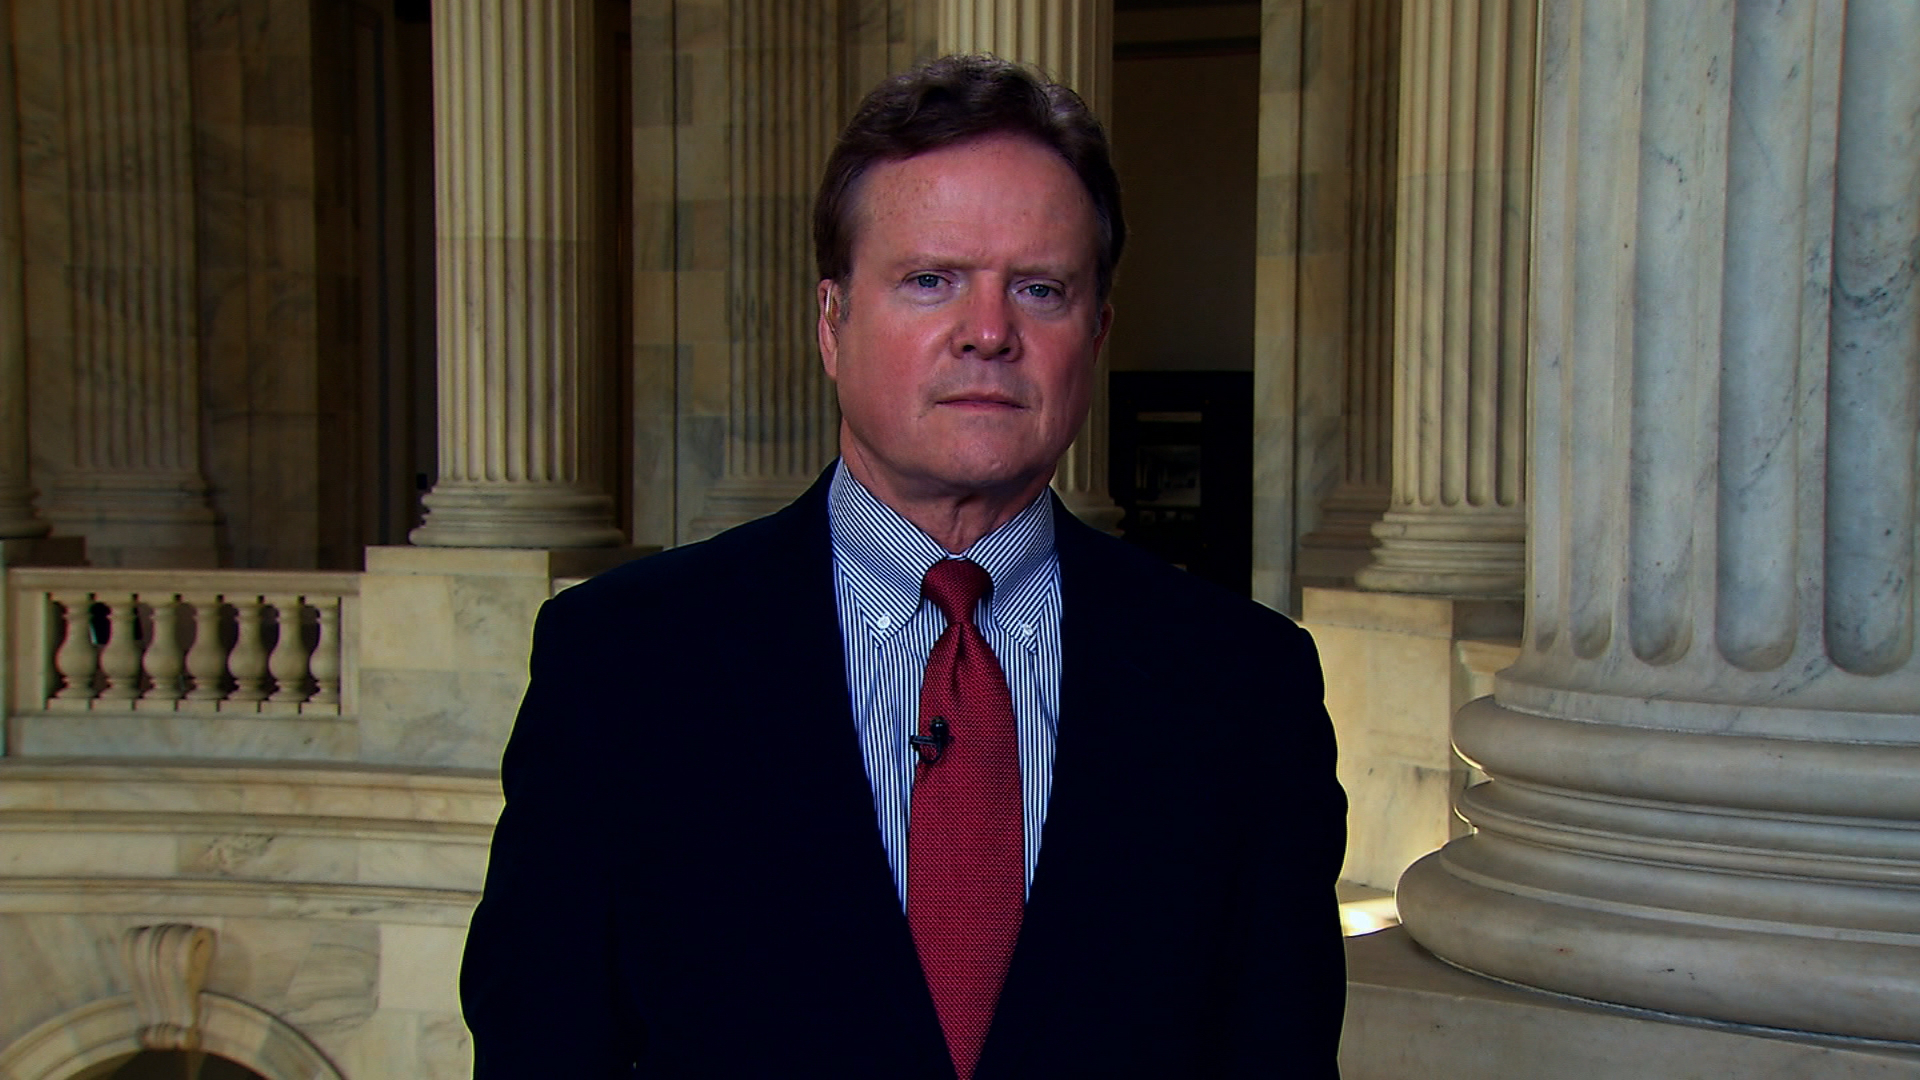 Sen. Jim Webb talks to CNN's John King about the political conflict in Libya.